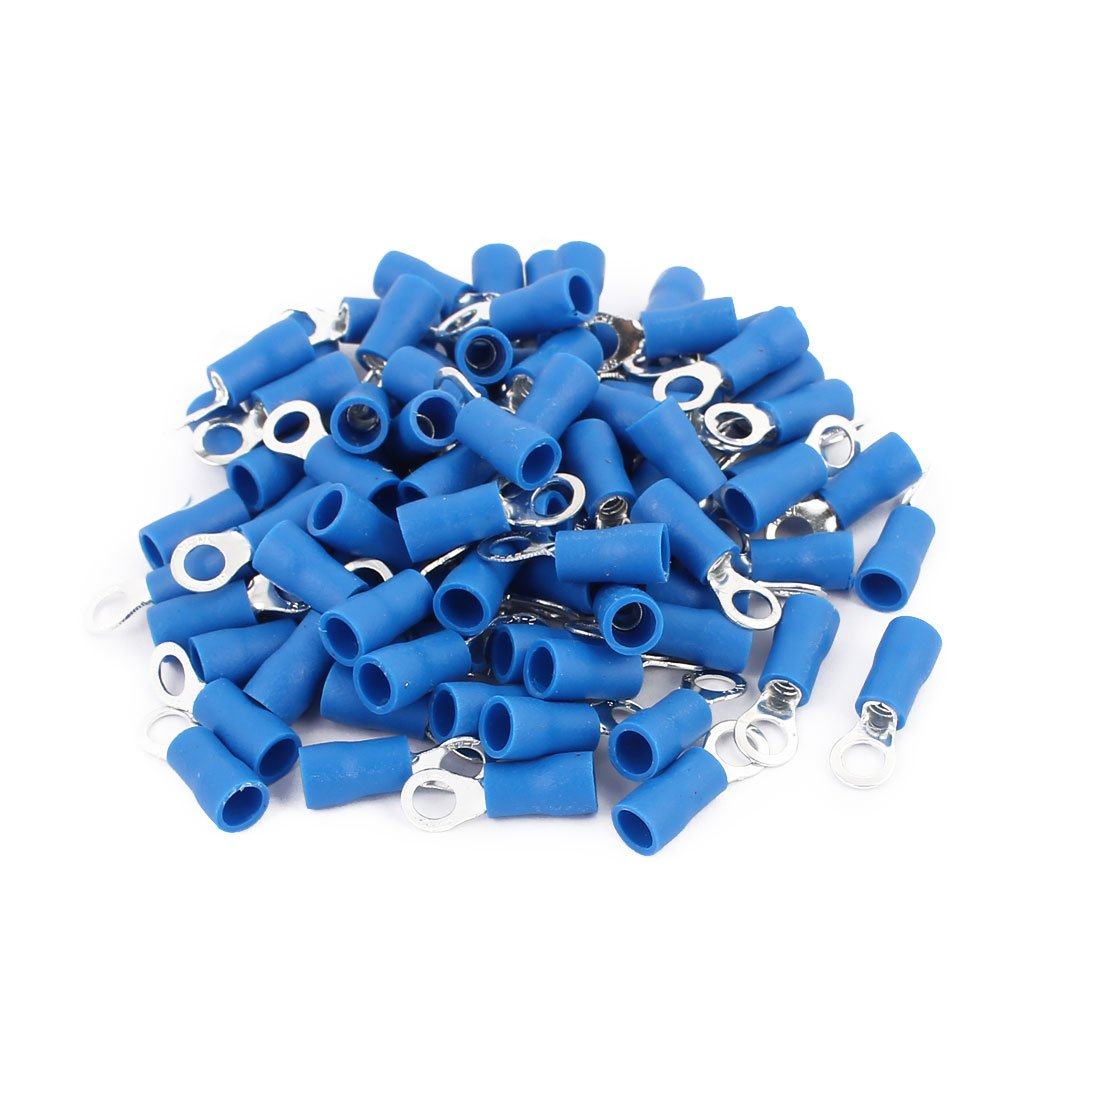 100PCS RV2-4S 16-14AWG Insulated Wire Connector Electrical Crimp Ring Terminals